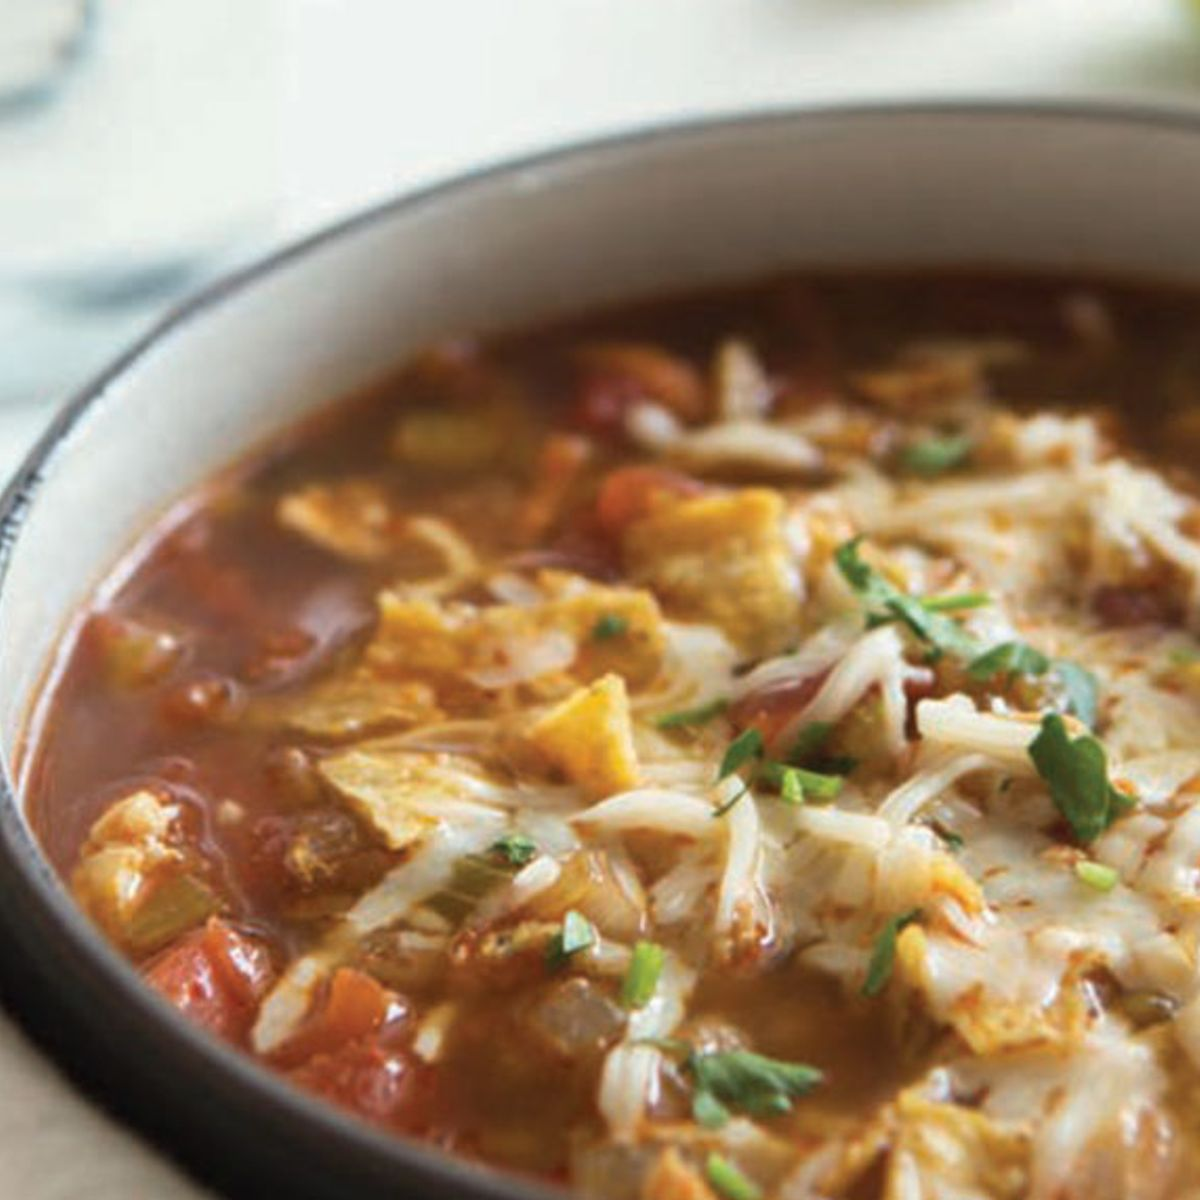 Top every serving of this chicken taco soup with broken tortilla chips and grated cheese